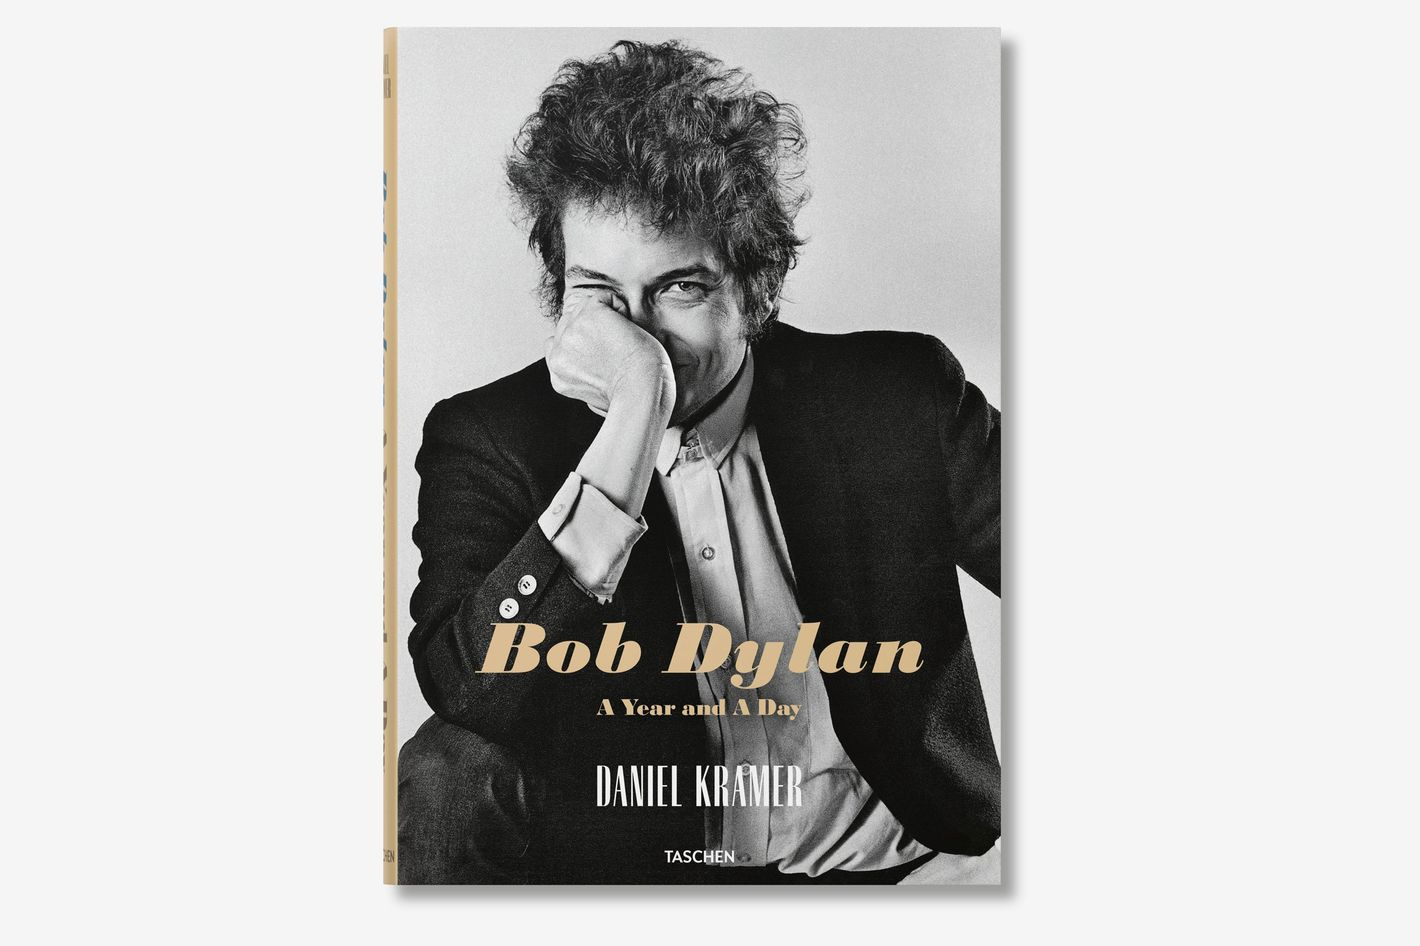 Bob Dylan, A Year and a Day